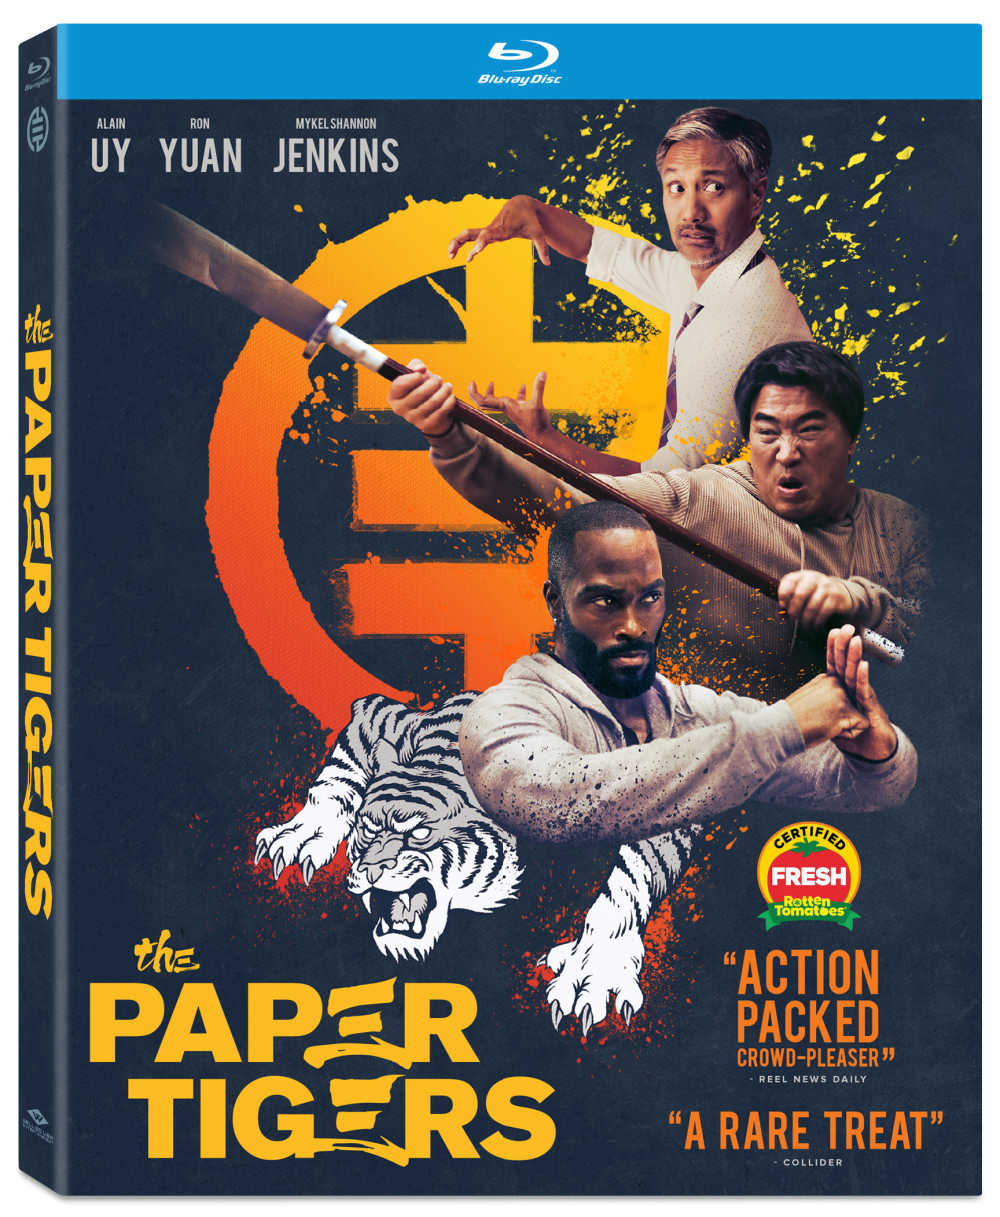 I grew up watching Bruce Lee, Jackie Chan and The Karate Kid, so was excited to see The Paper Tigers martial arts film.